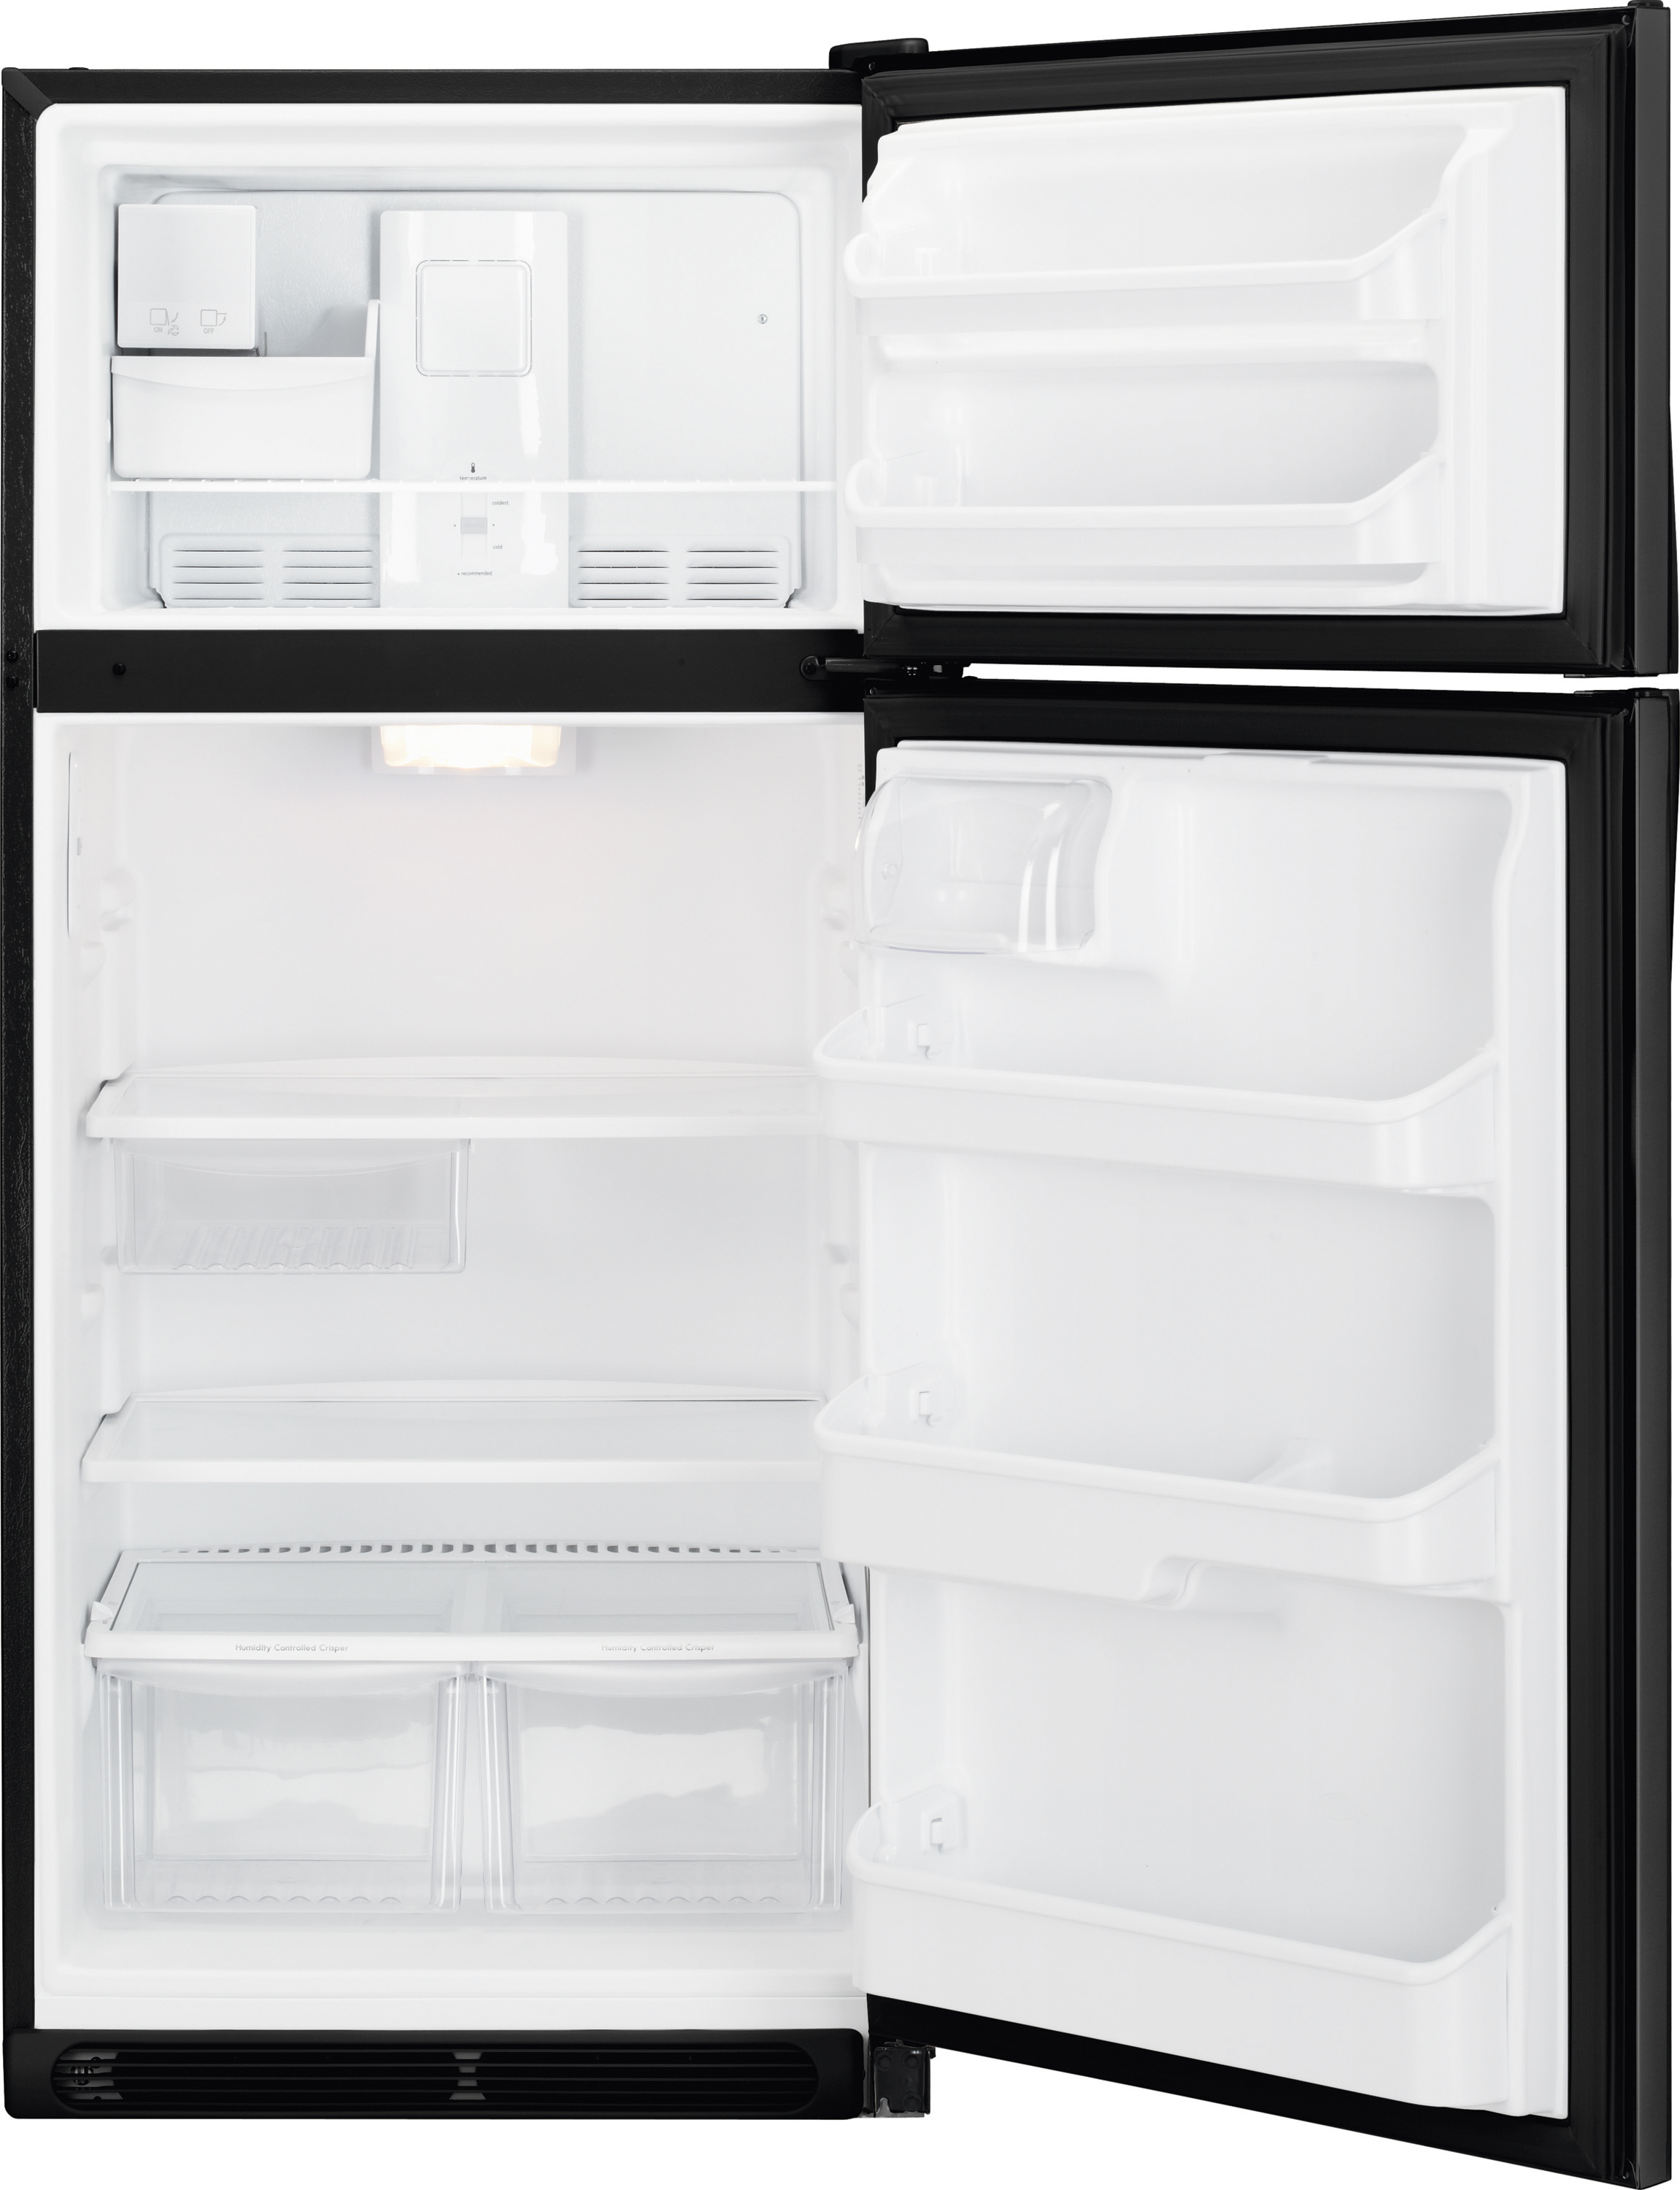 Kenmore 70609 18 cu. ft. Top Freezer Refrigerator - Black